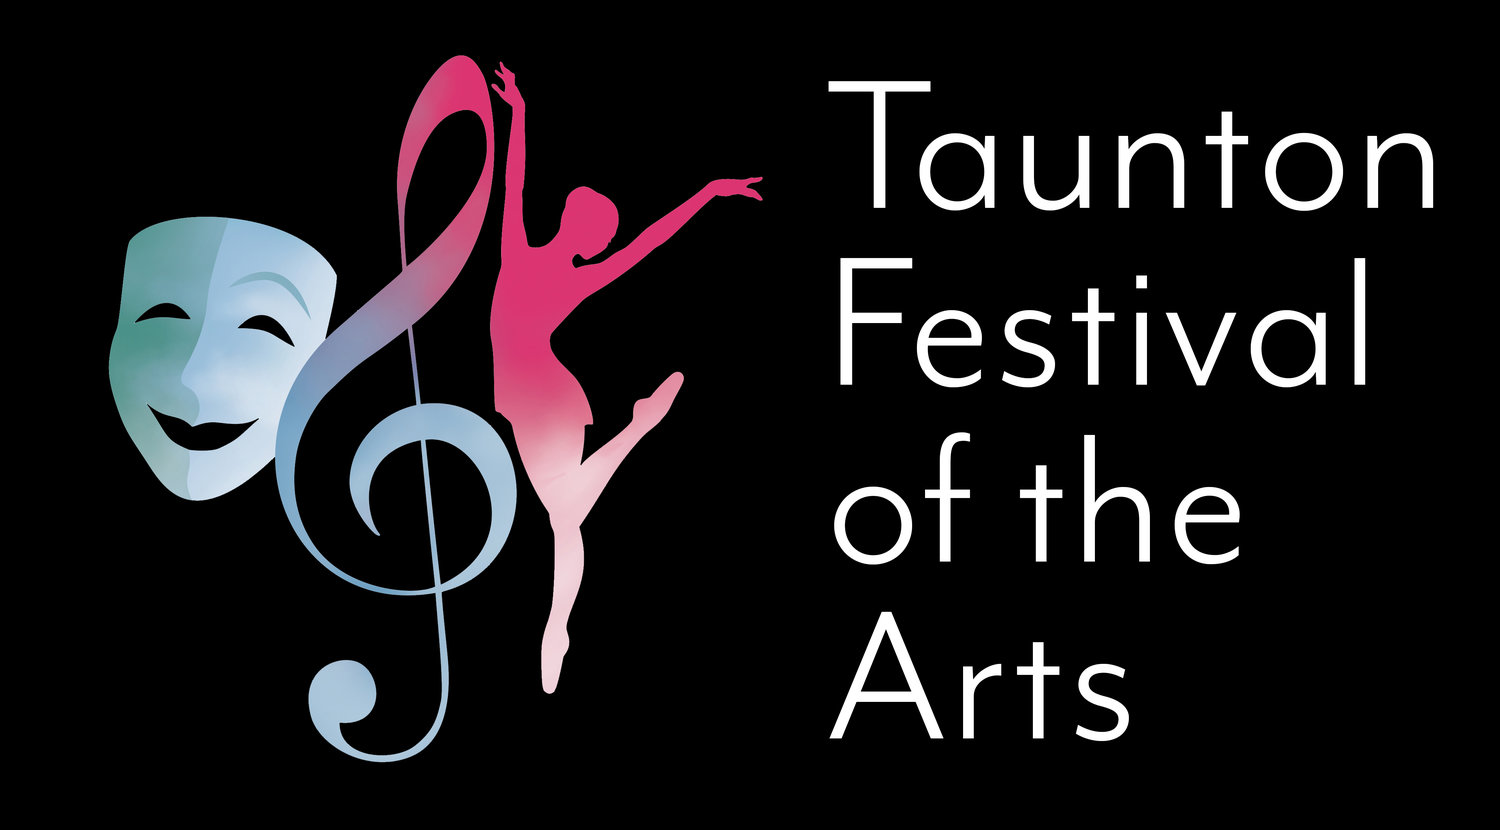 Taunton Festival of the Arts